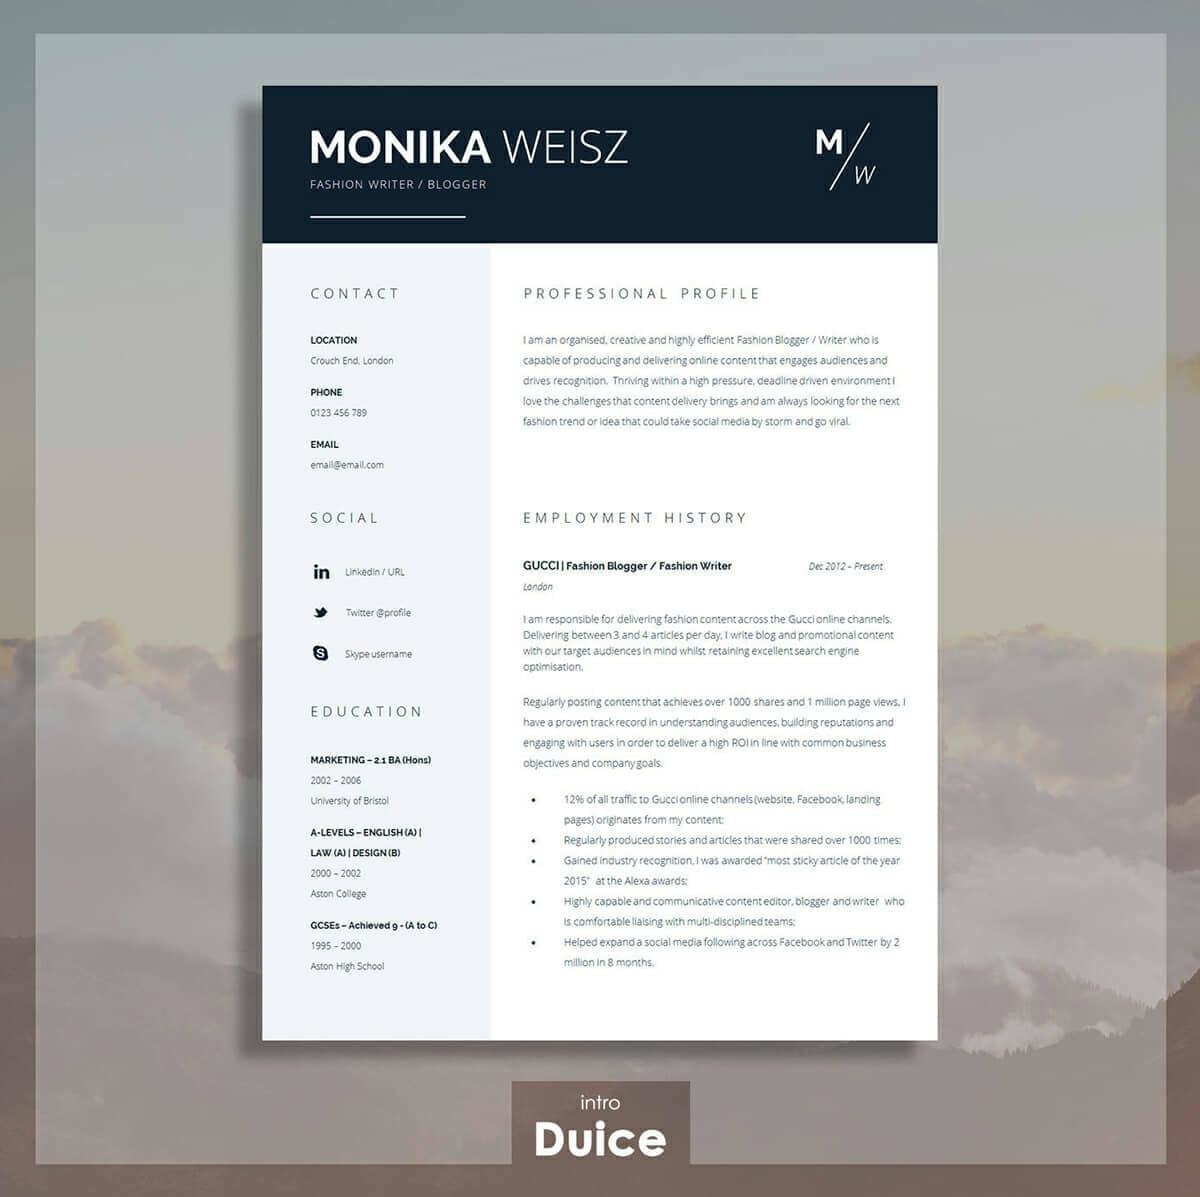 Ten Great Free Resume Templates Microsoft Word Download Links: Best Resume Templates: 15 Examples To Download & Use Right